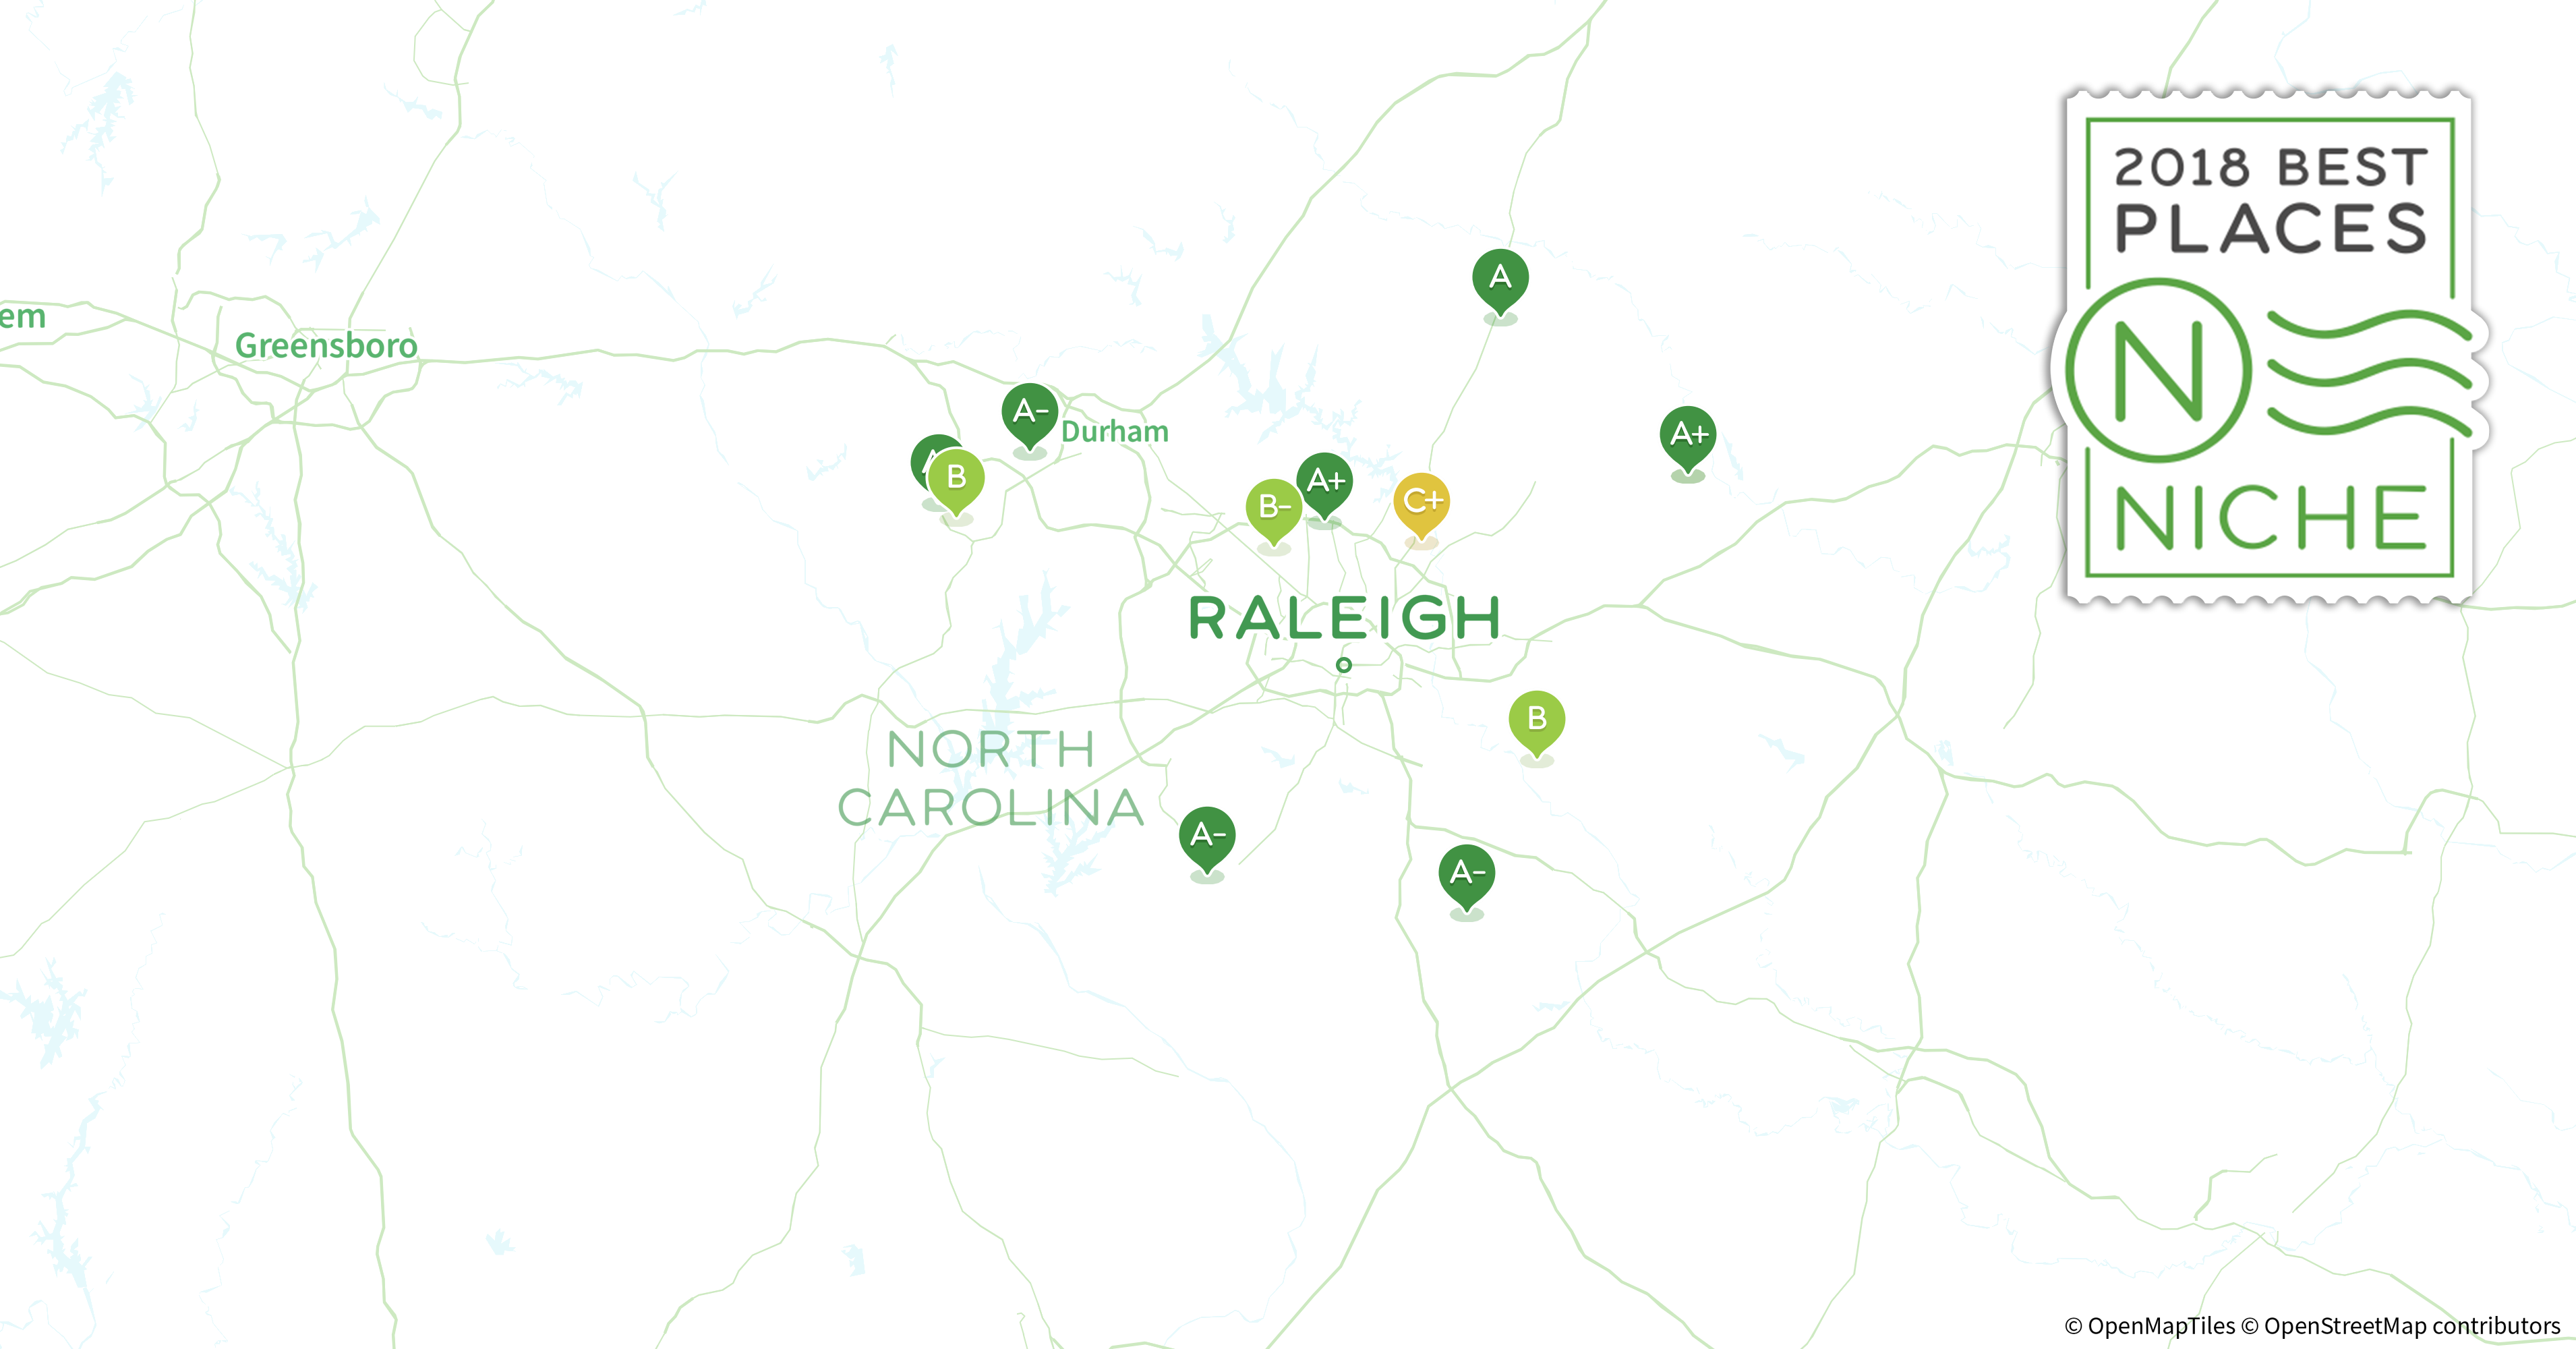 2018 Best Raleigh Area Suburbs for Families - Niche